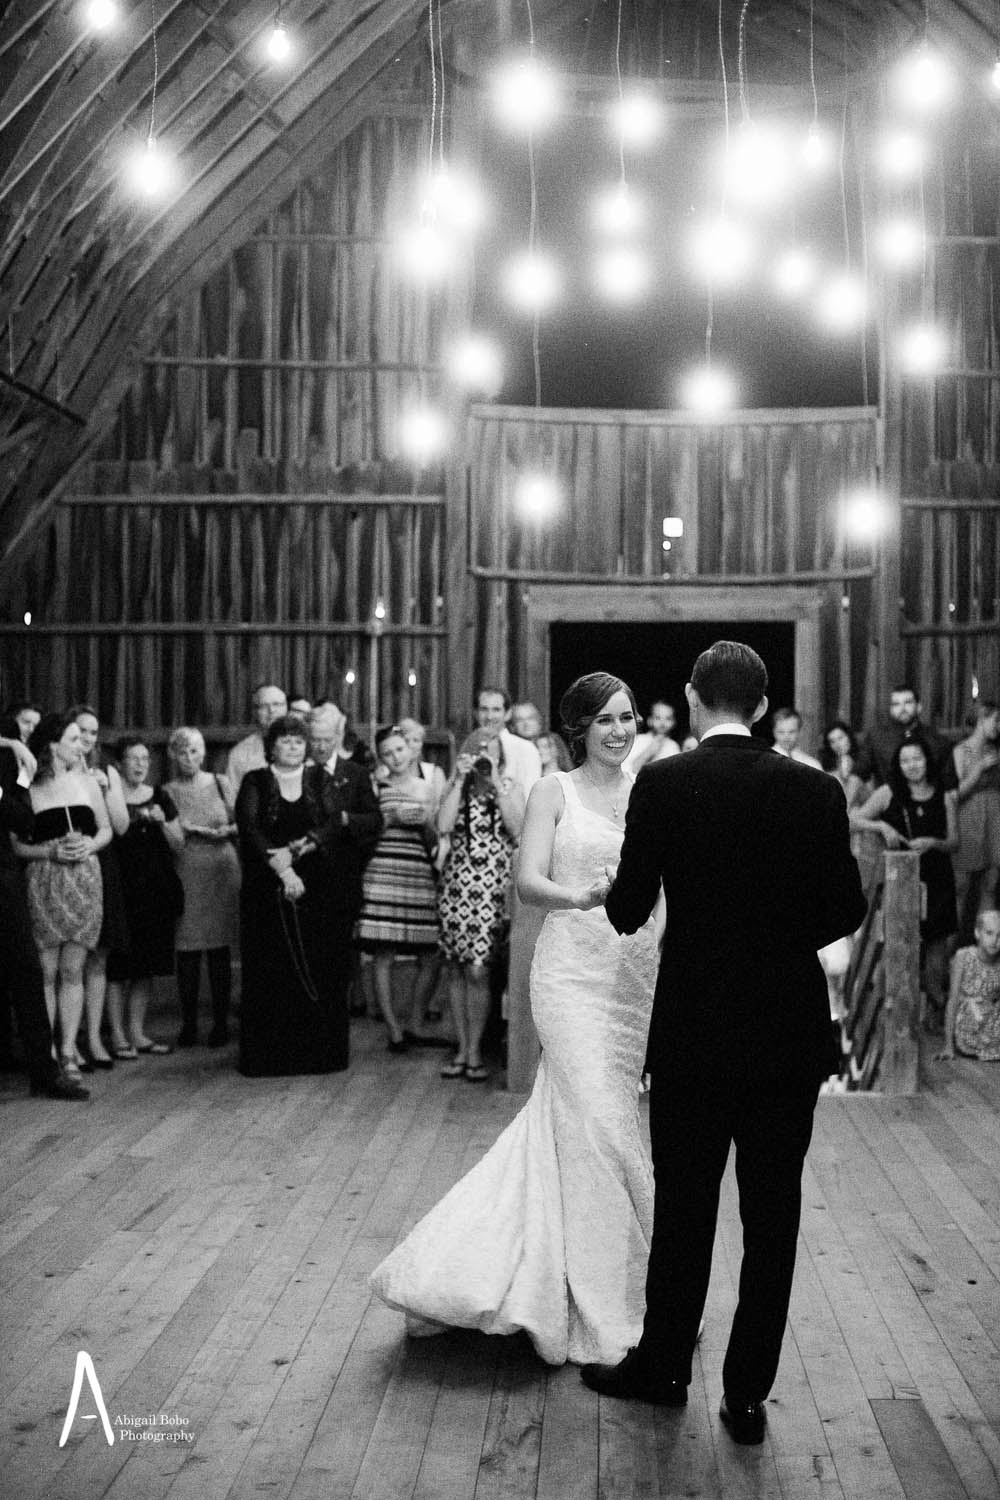 bride and groom dancing in a barn loft